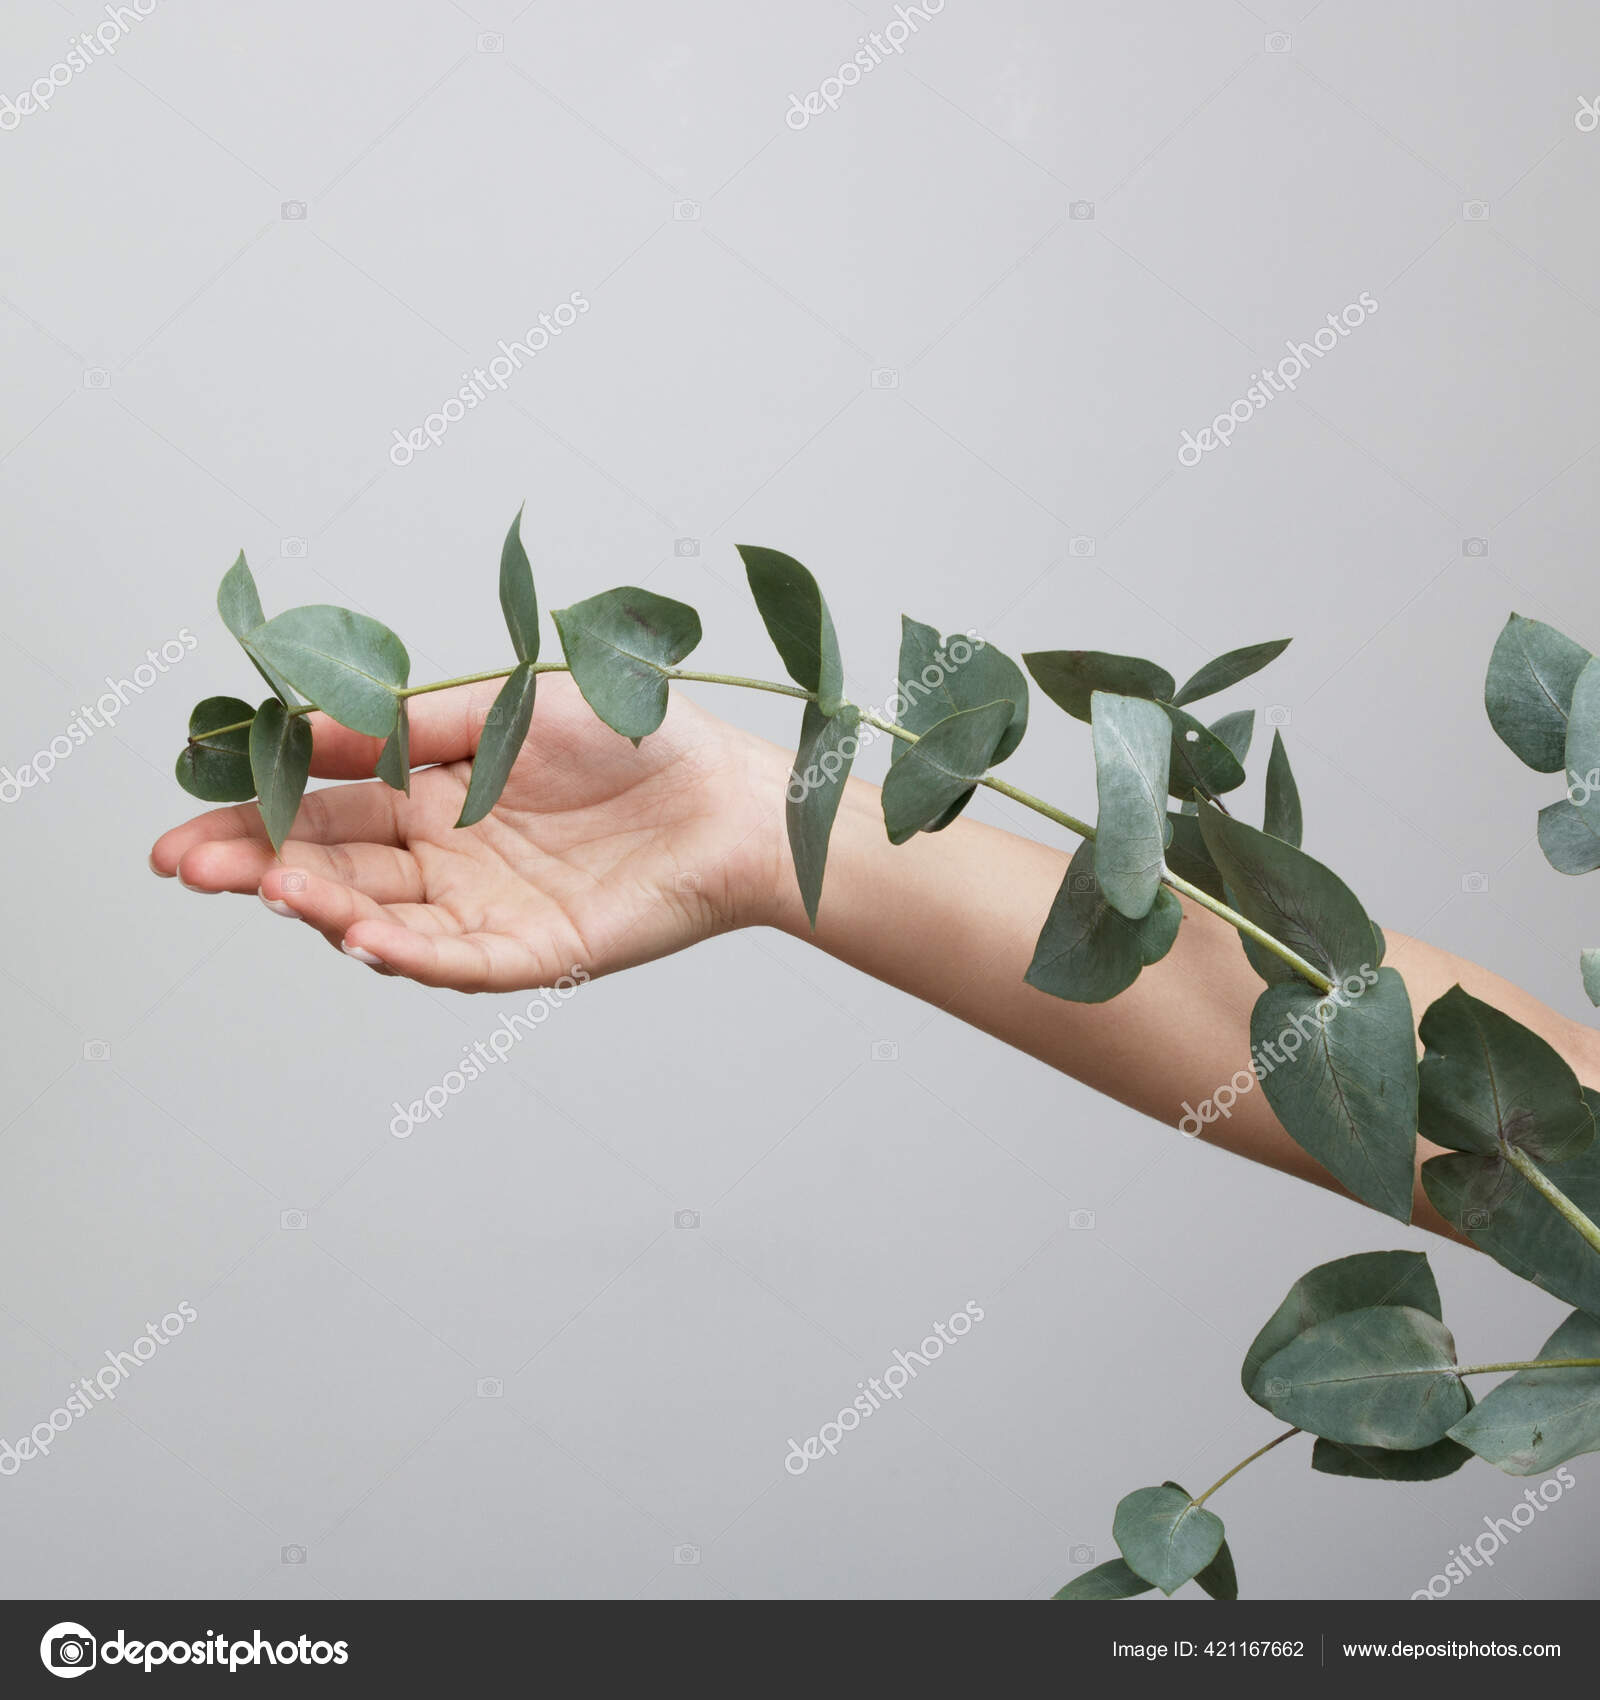 Woman Holding Flowers Eucalyptus On White Background Concept Cosmetic Body Care Anti Wrinkles Anti Aging Spa Female Hand With Beautiful Eucalyptus Leaves Stock Photo C Looking 2 The Sky 421167662